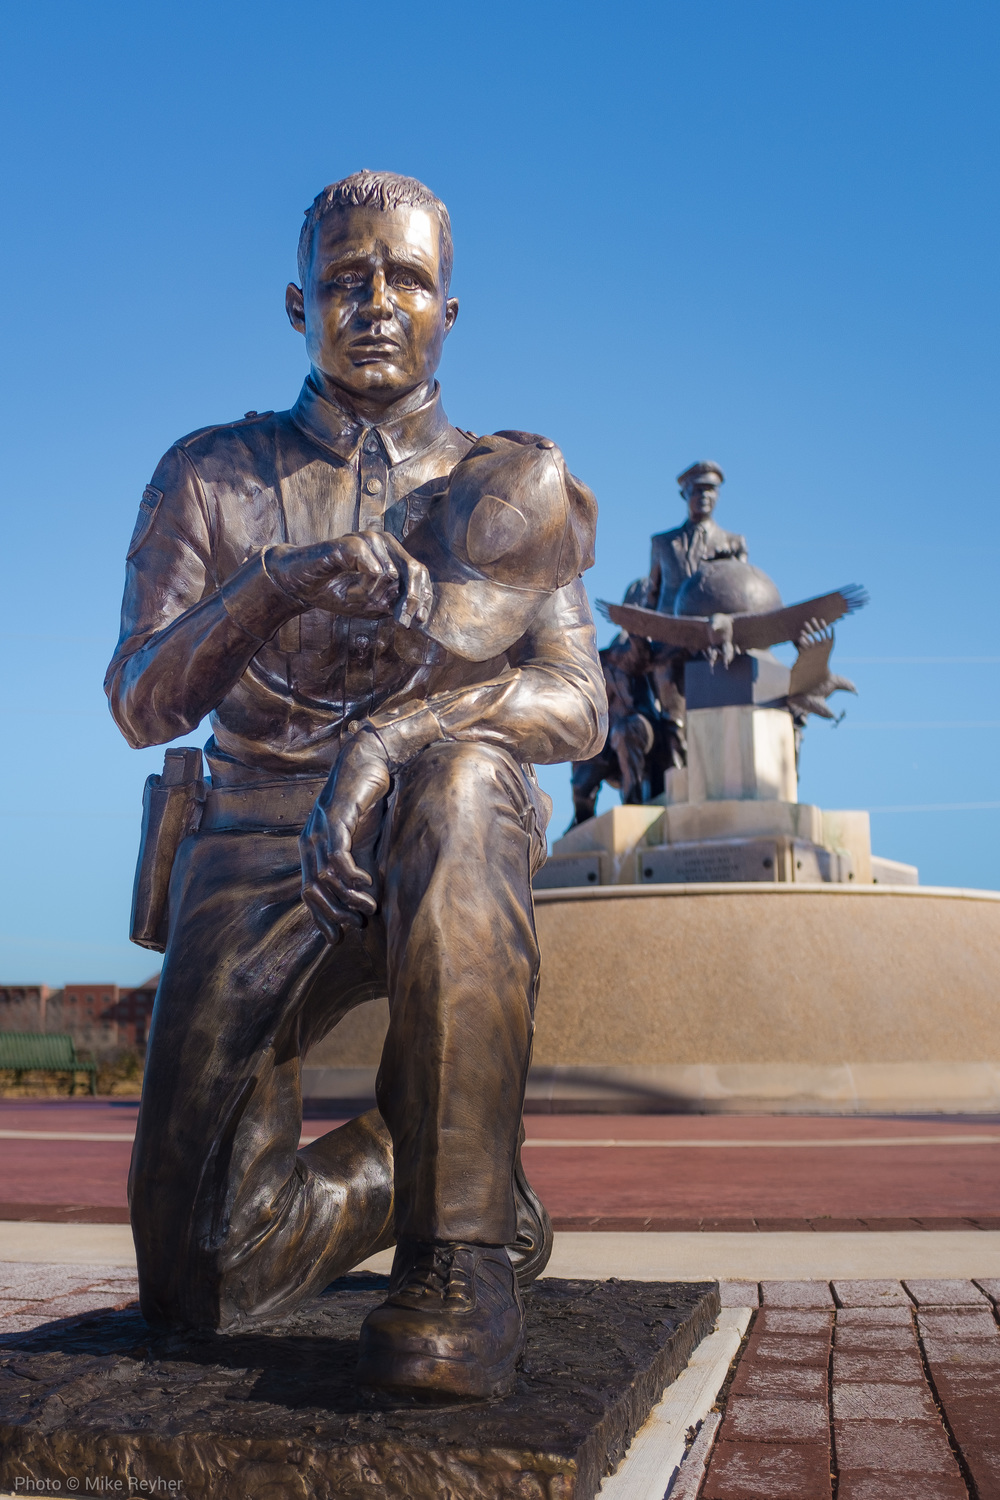 A Bronze Sculpture of a Police Offer Kneels at the The 9/11 Flight Crew Memorial in Grapevine